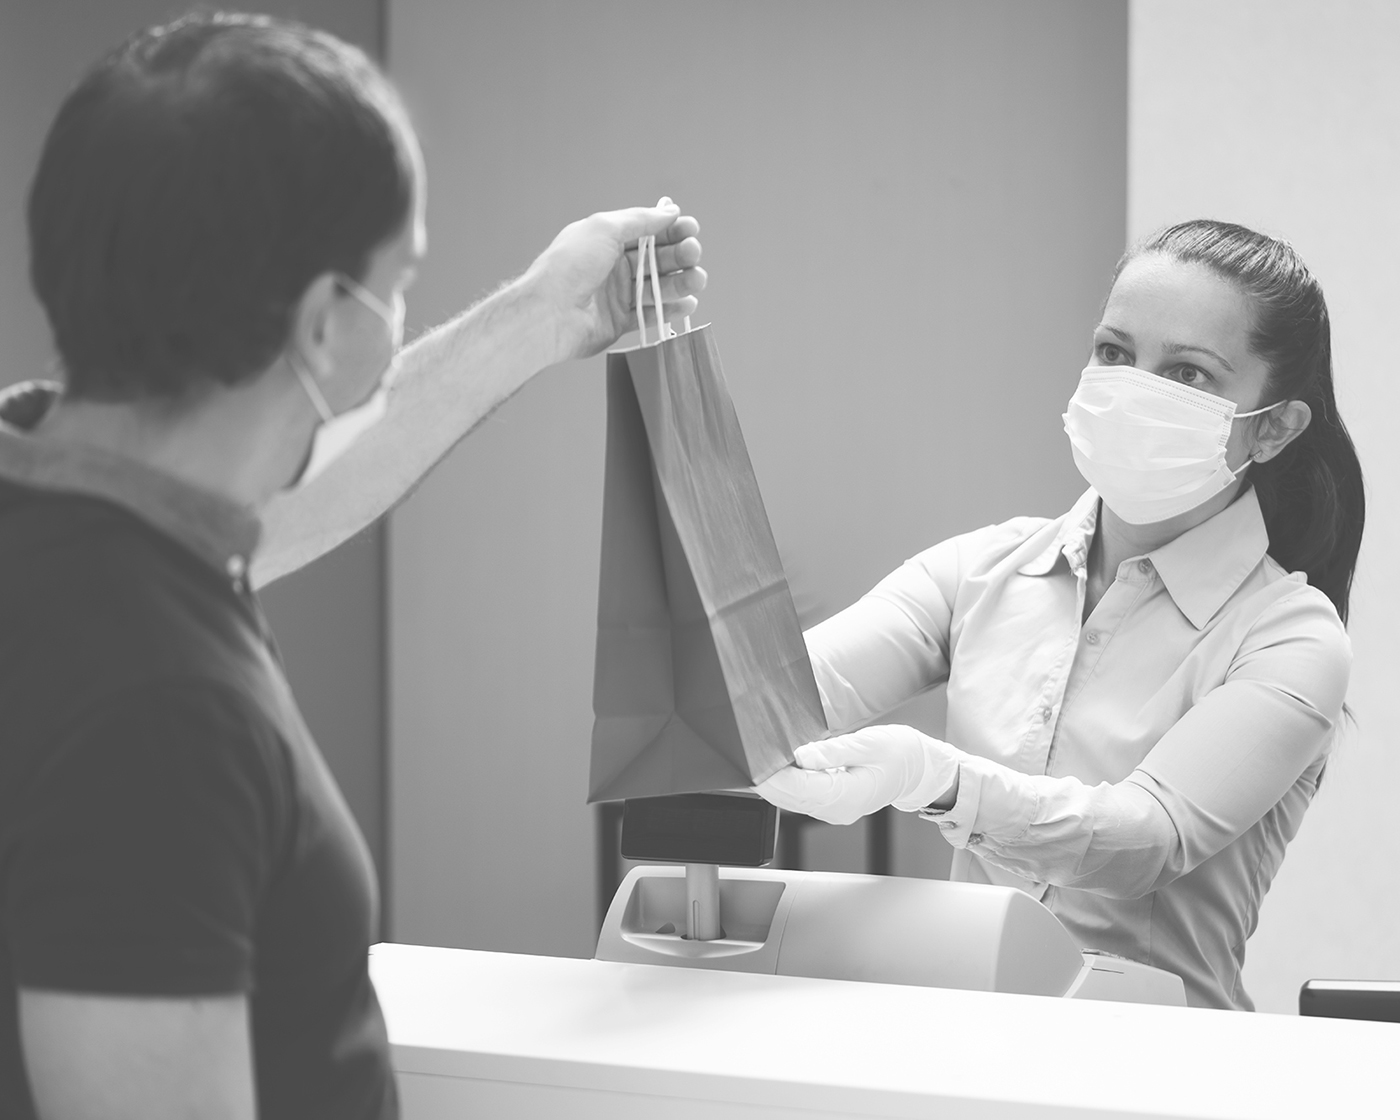 Female store clerk wearing a surgical mask passing a paper shopping bag to a male wearing surgical mask